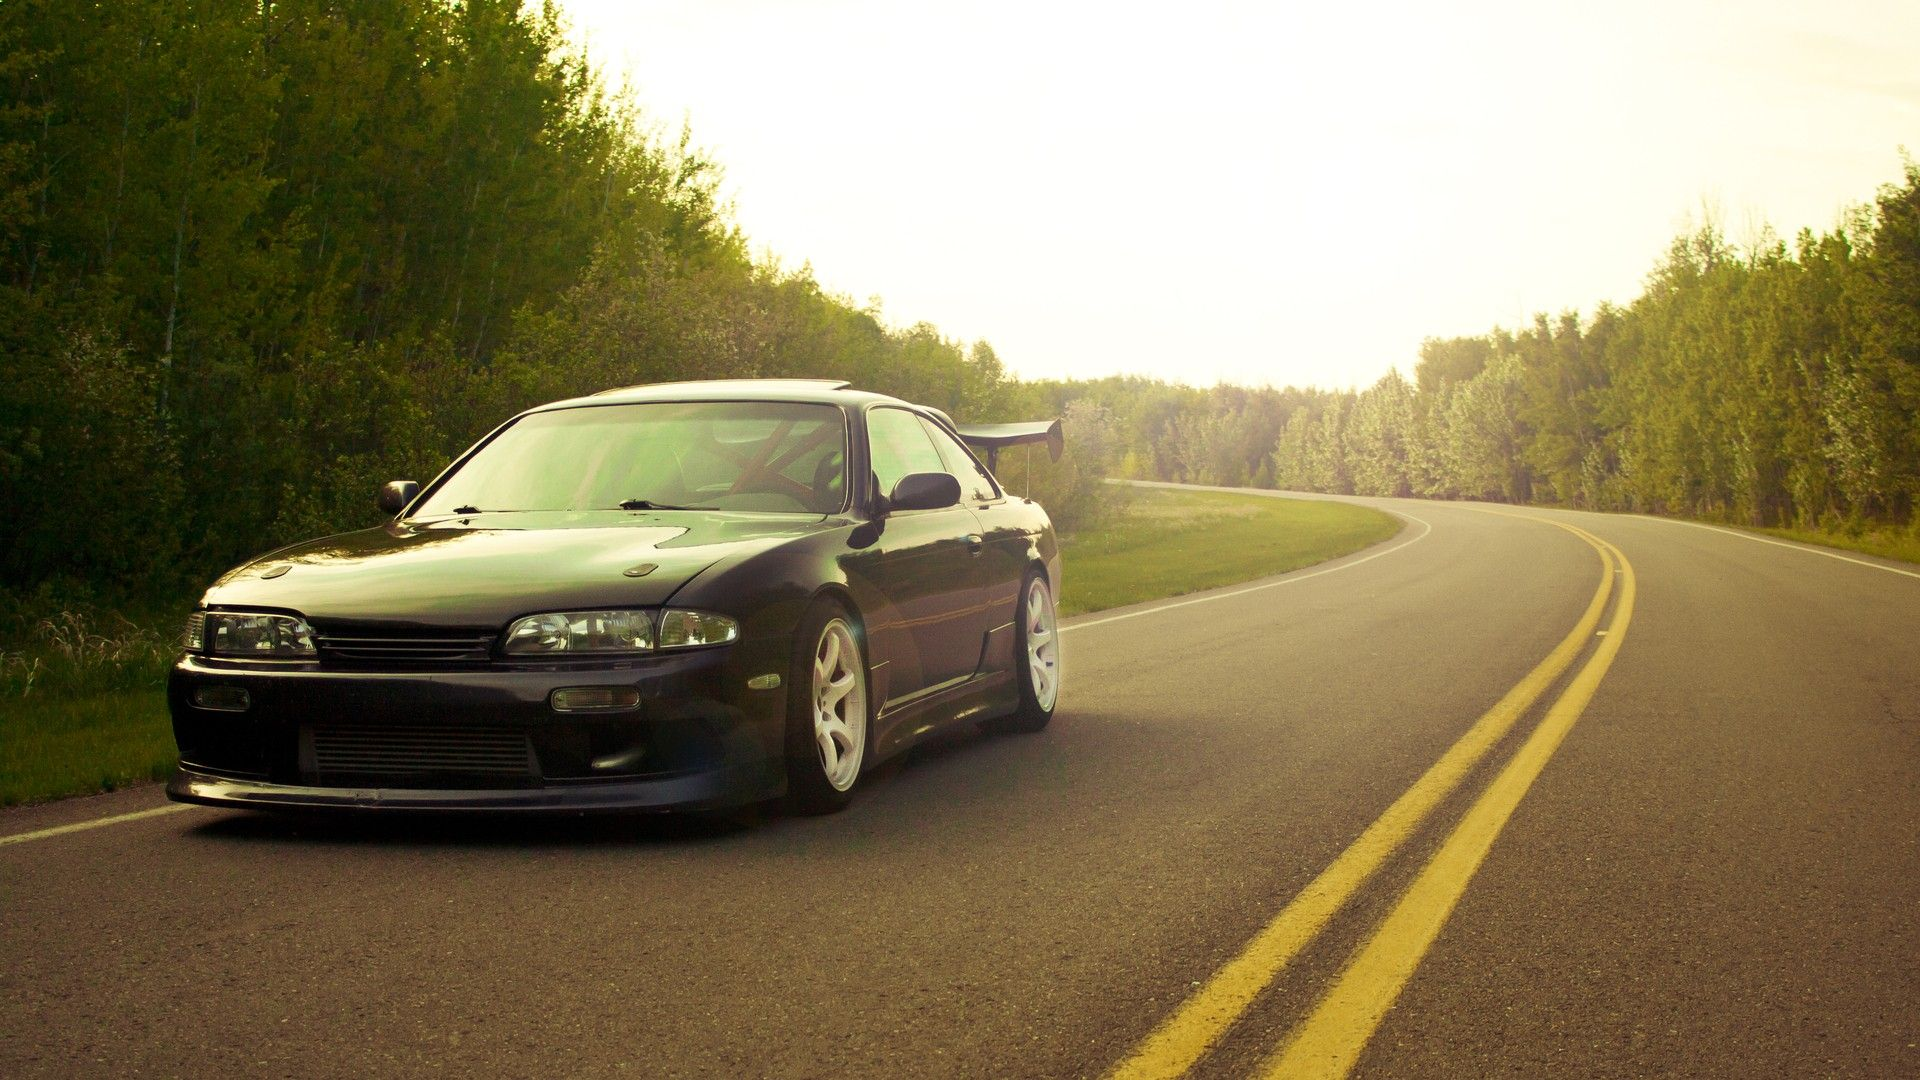 Nissan Silvia S14 JDM Tuner classifieds at